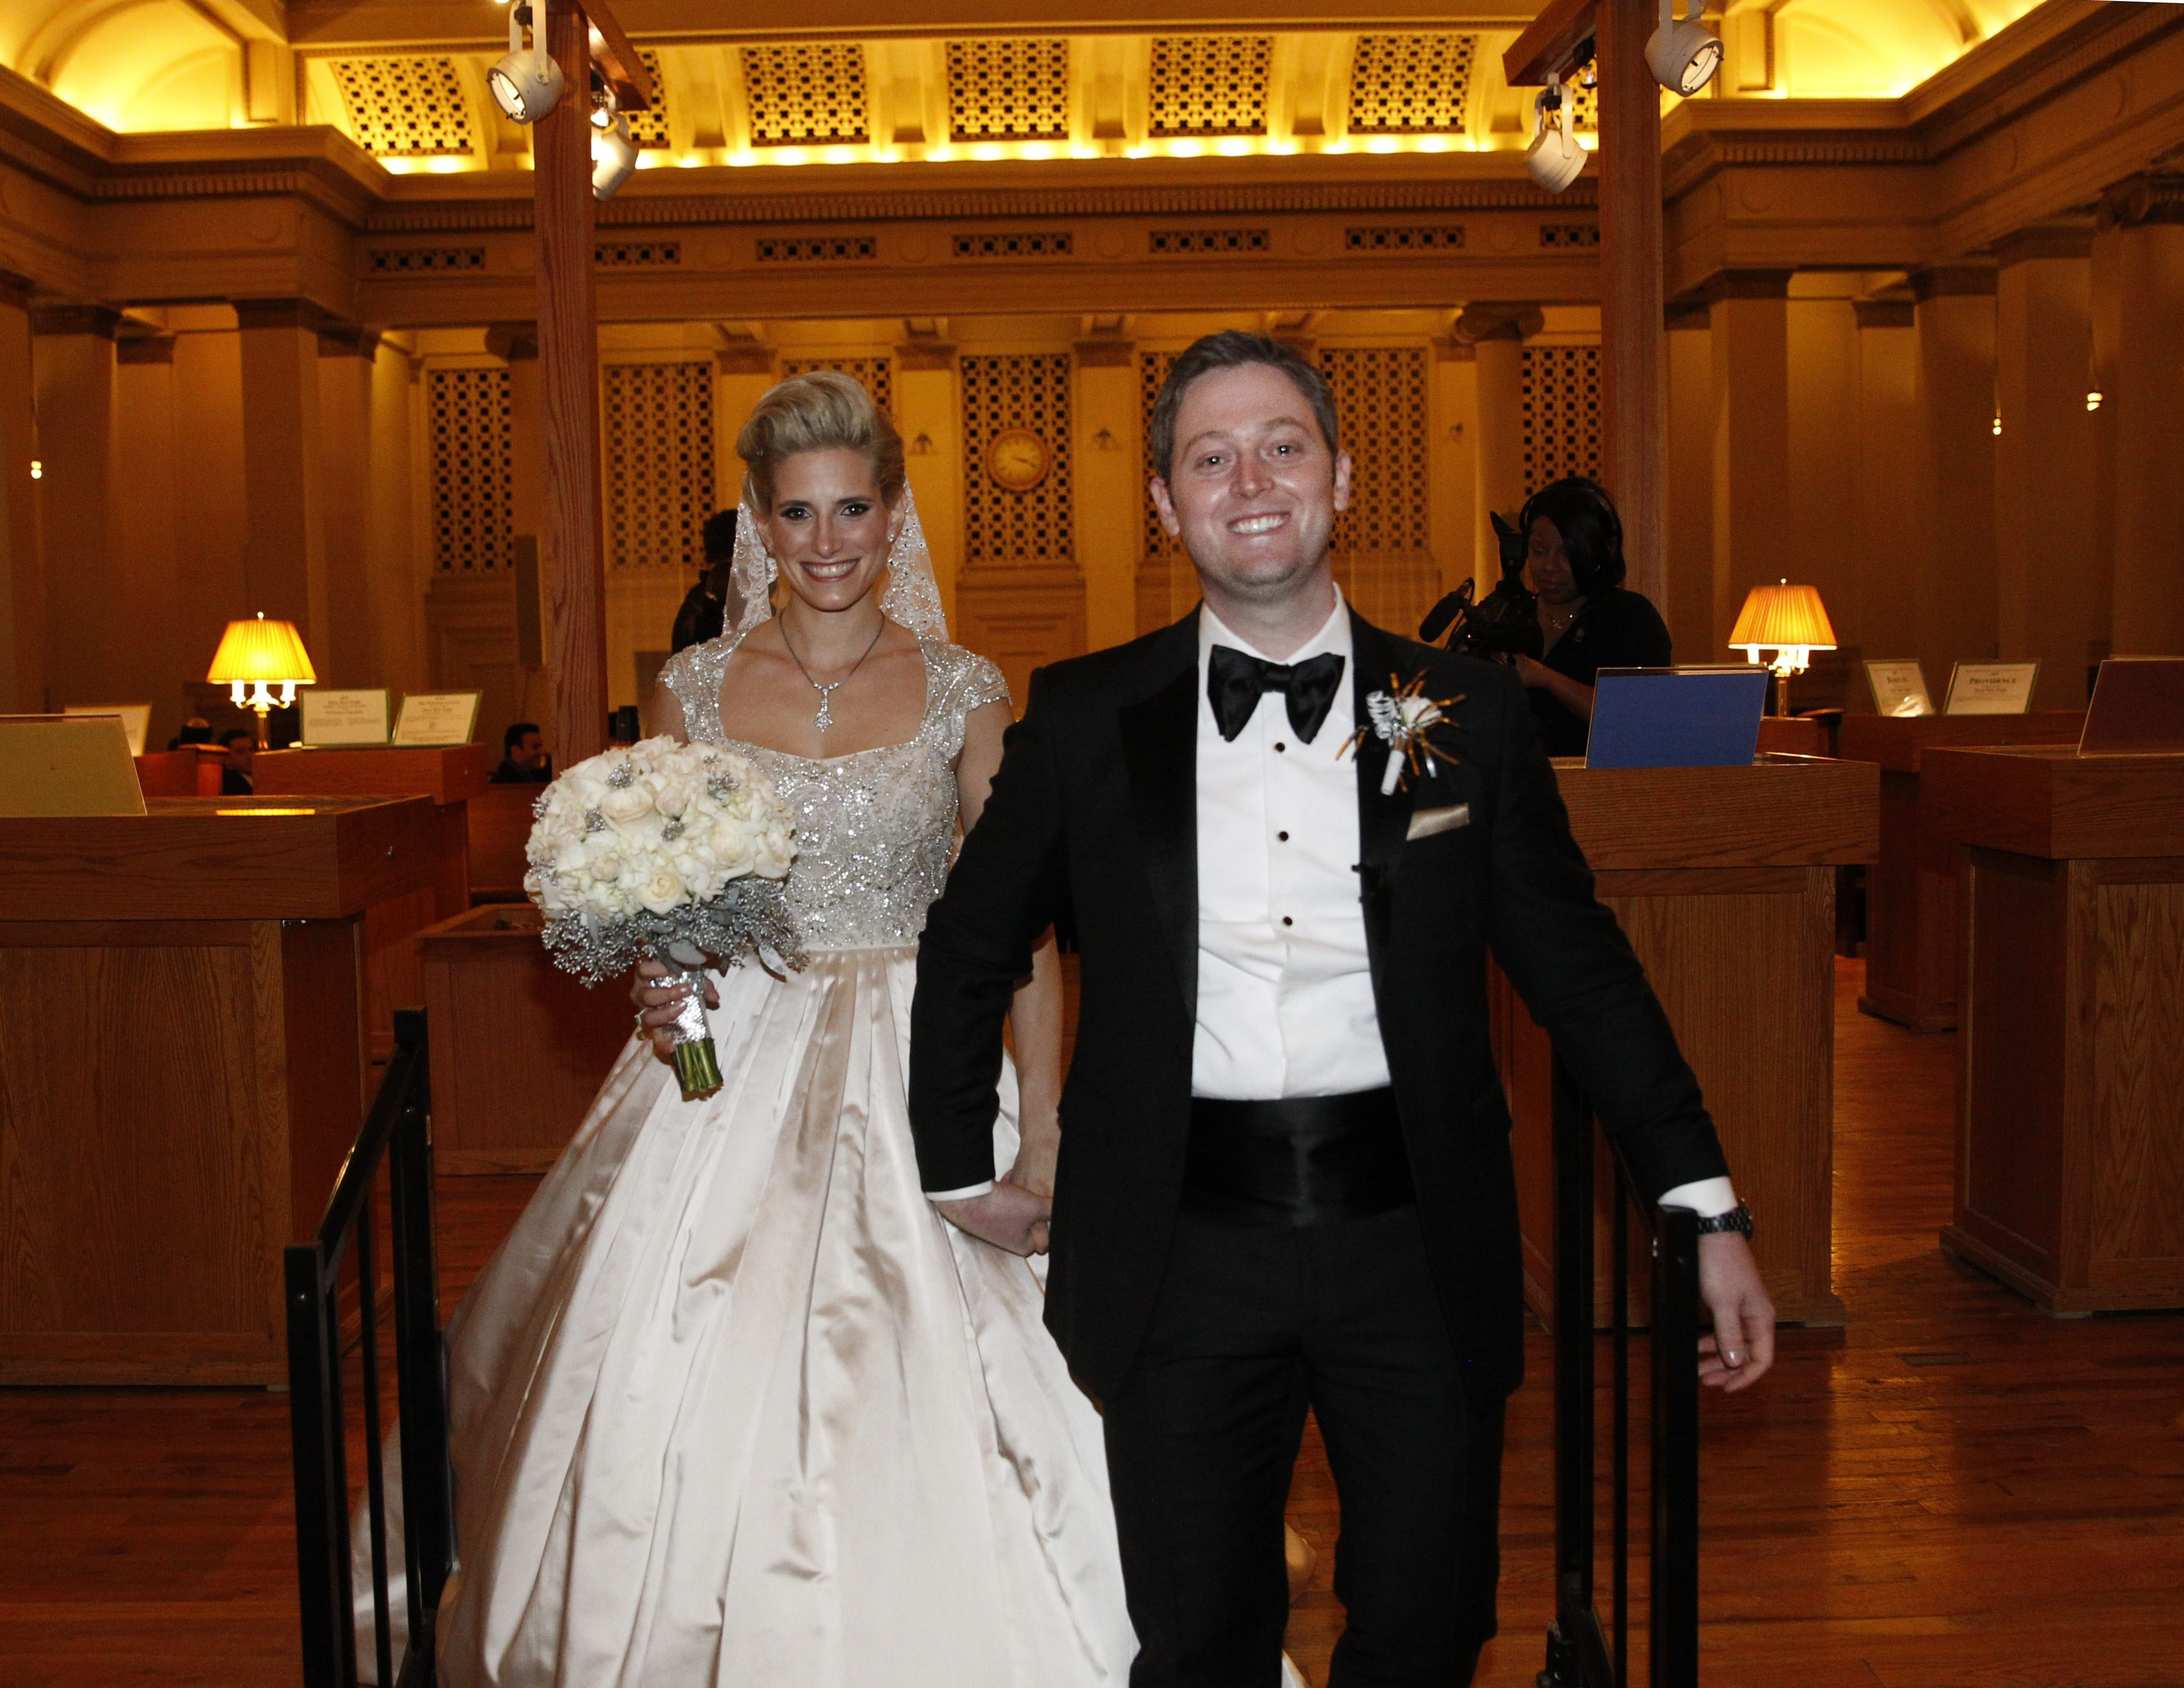 Follow up episode to air at 9 pm friday on tlc wedding pretty say yes to the dress revisits local bride zabrina reich ombrellifo Images